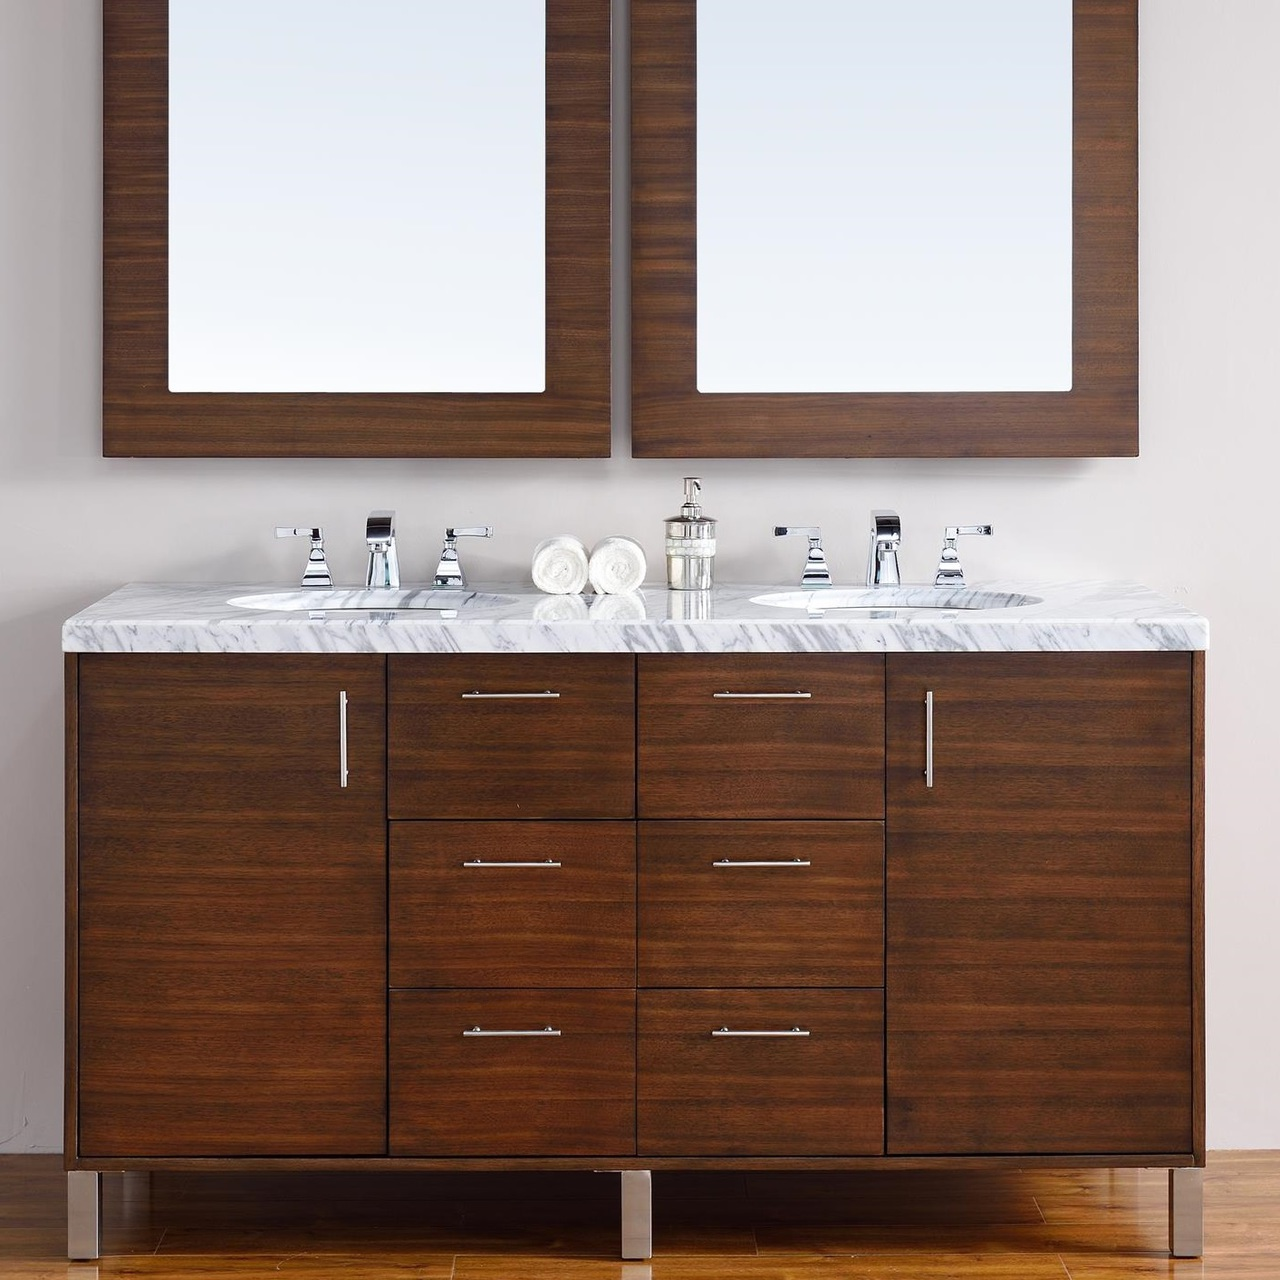 for marilla top unit cabinet vanity bathroom combo undermount small inch double with sinks single sink vanities under cabinets